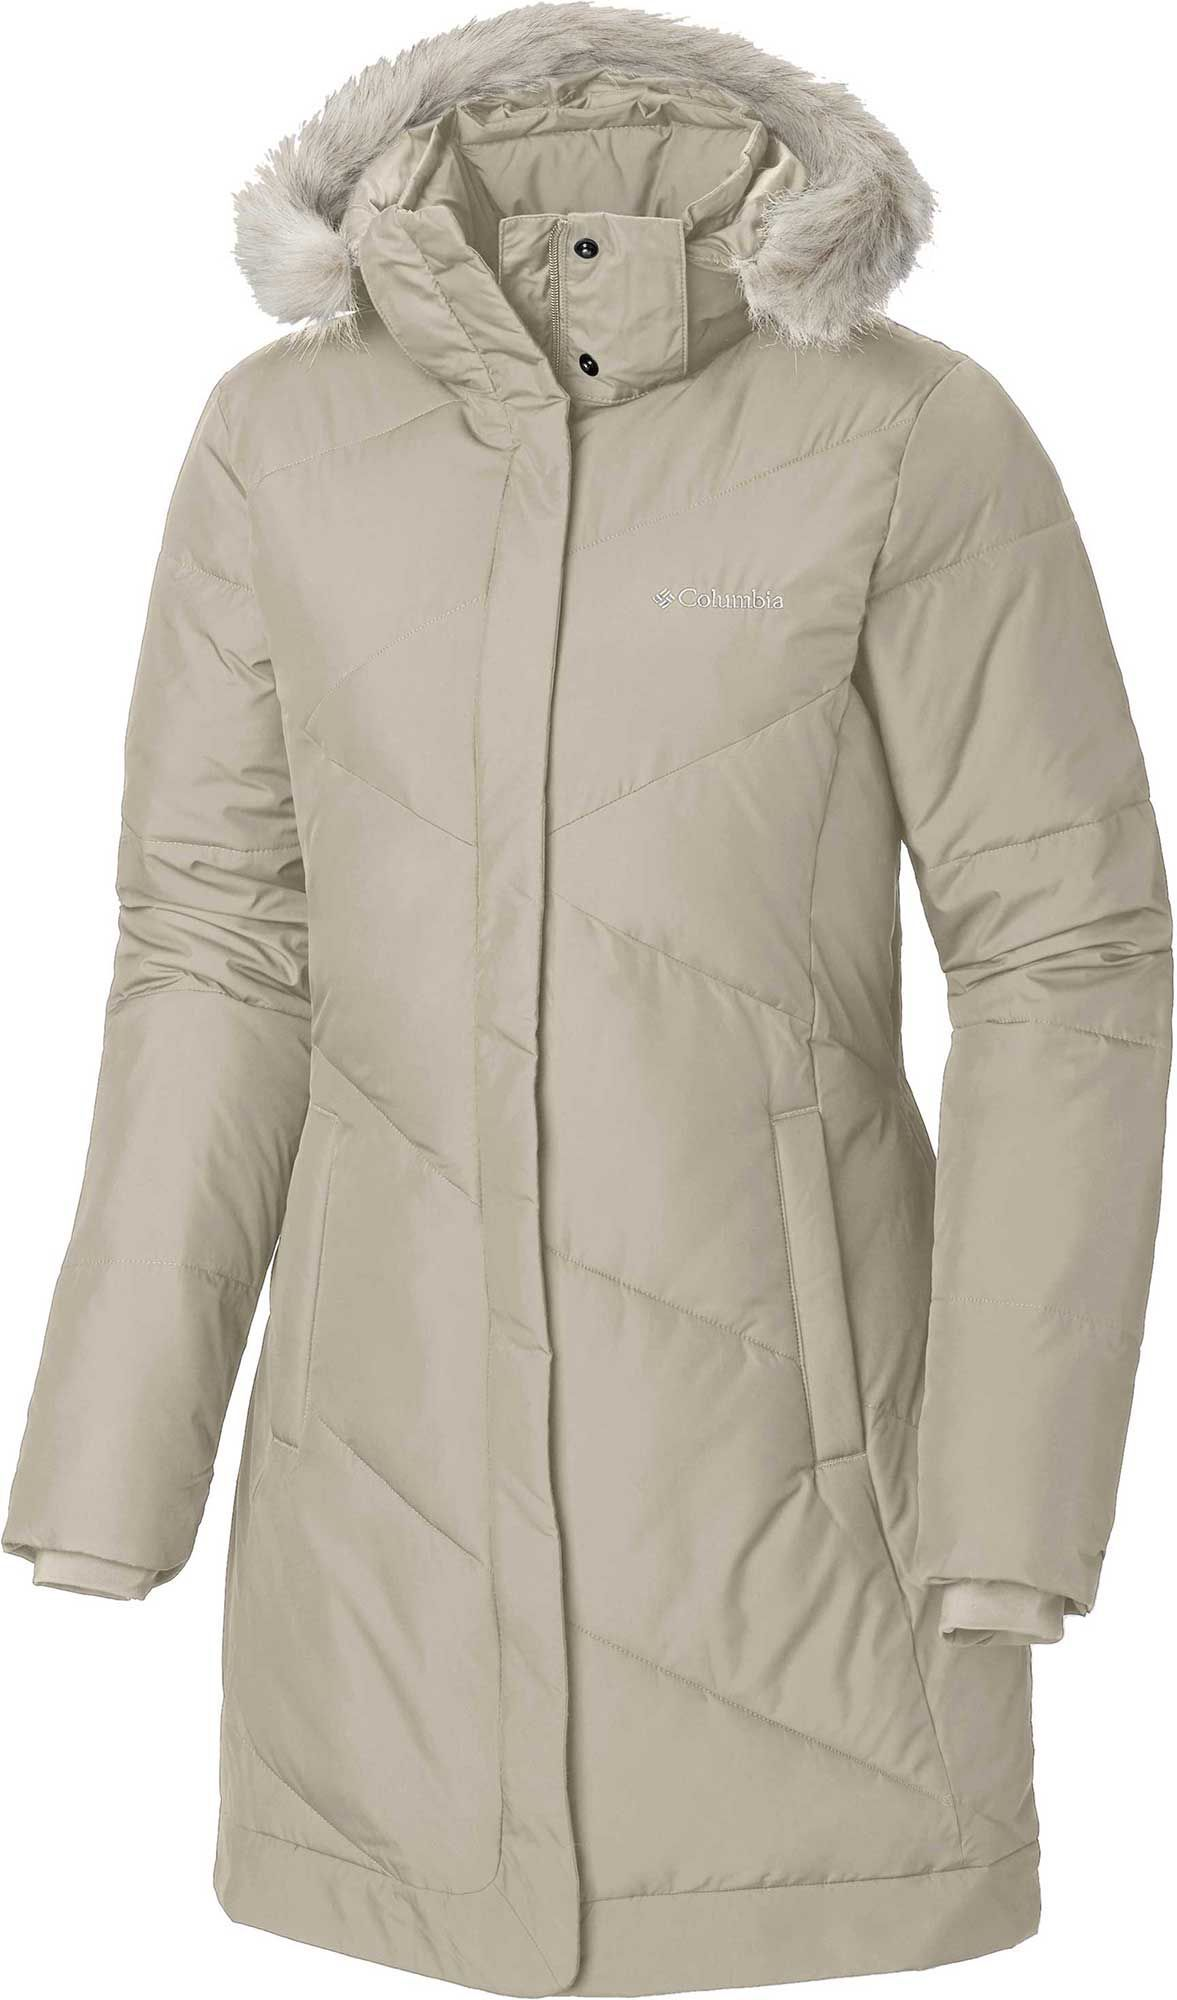 79f81b0365a Columbia Women s Plus-Size Snow Eclipse Mid Insulated Jacket